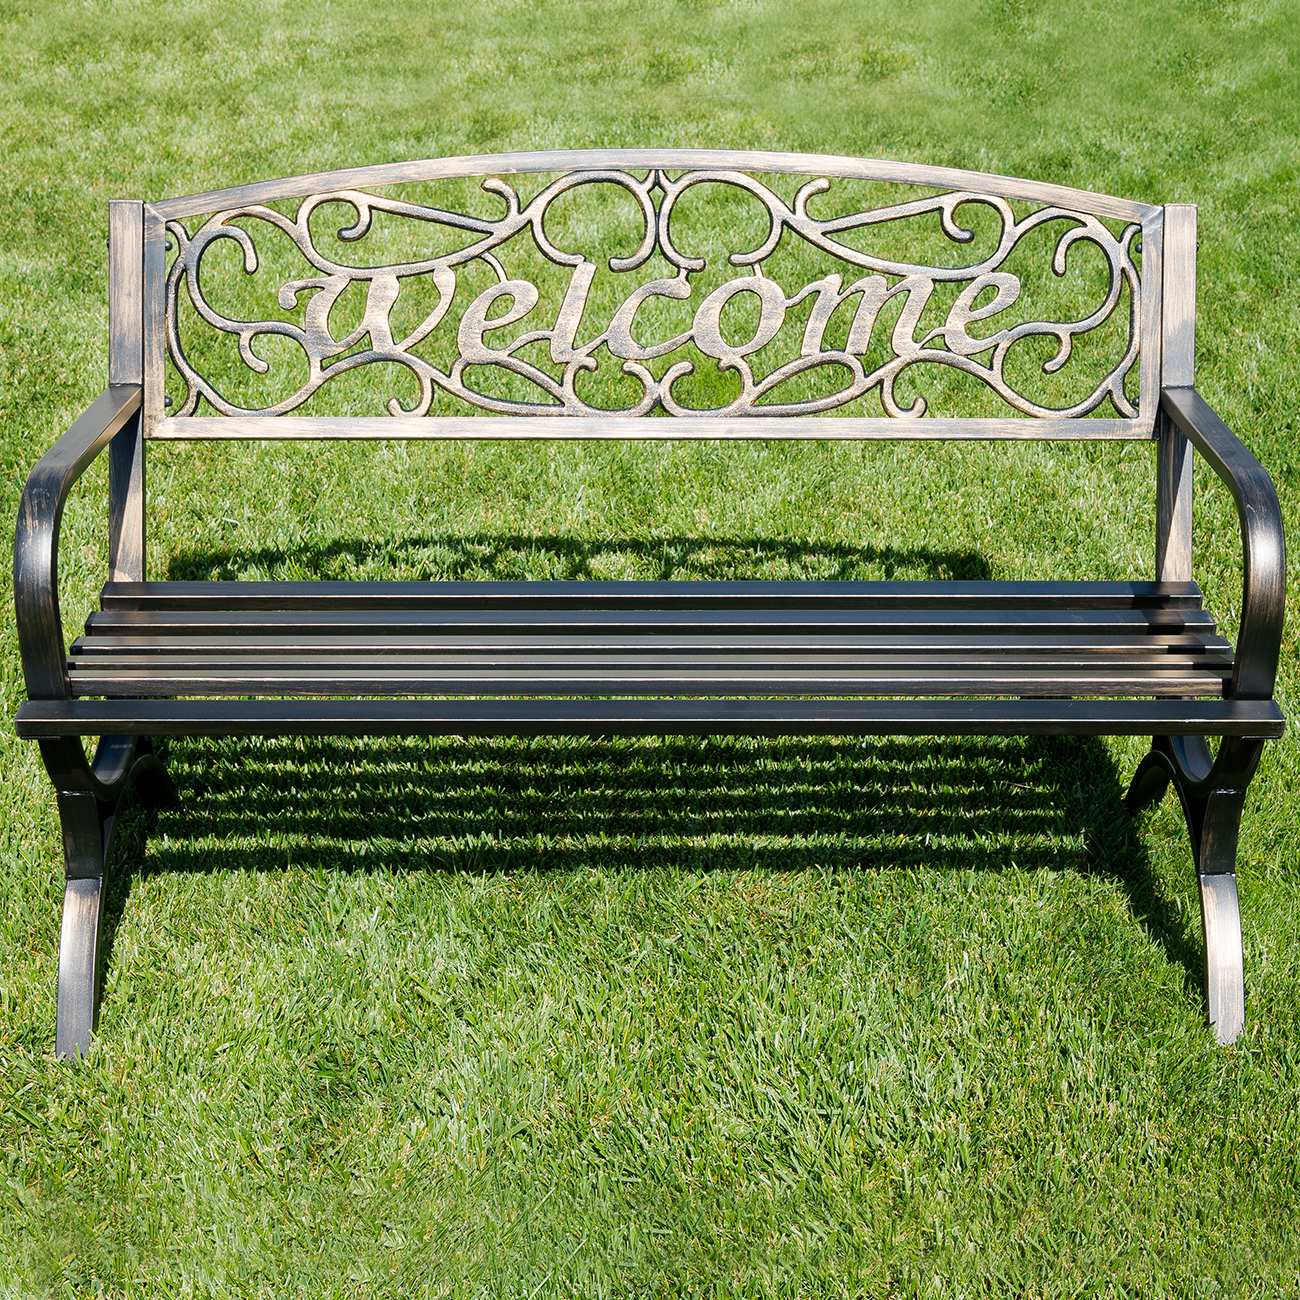 Wooden Park Benches Front Elegance Welcome Design Outdoor Park Bench Backyard Yard